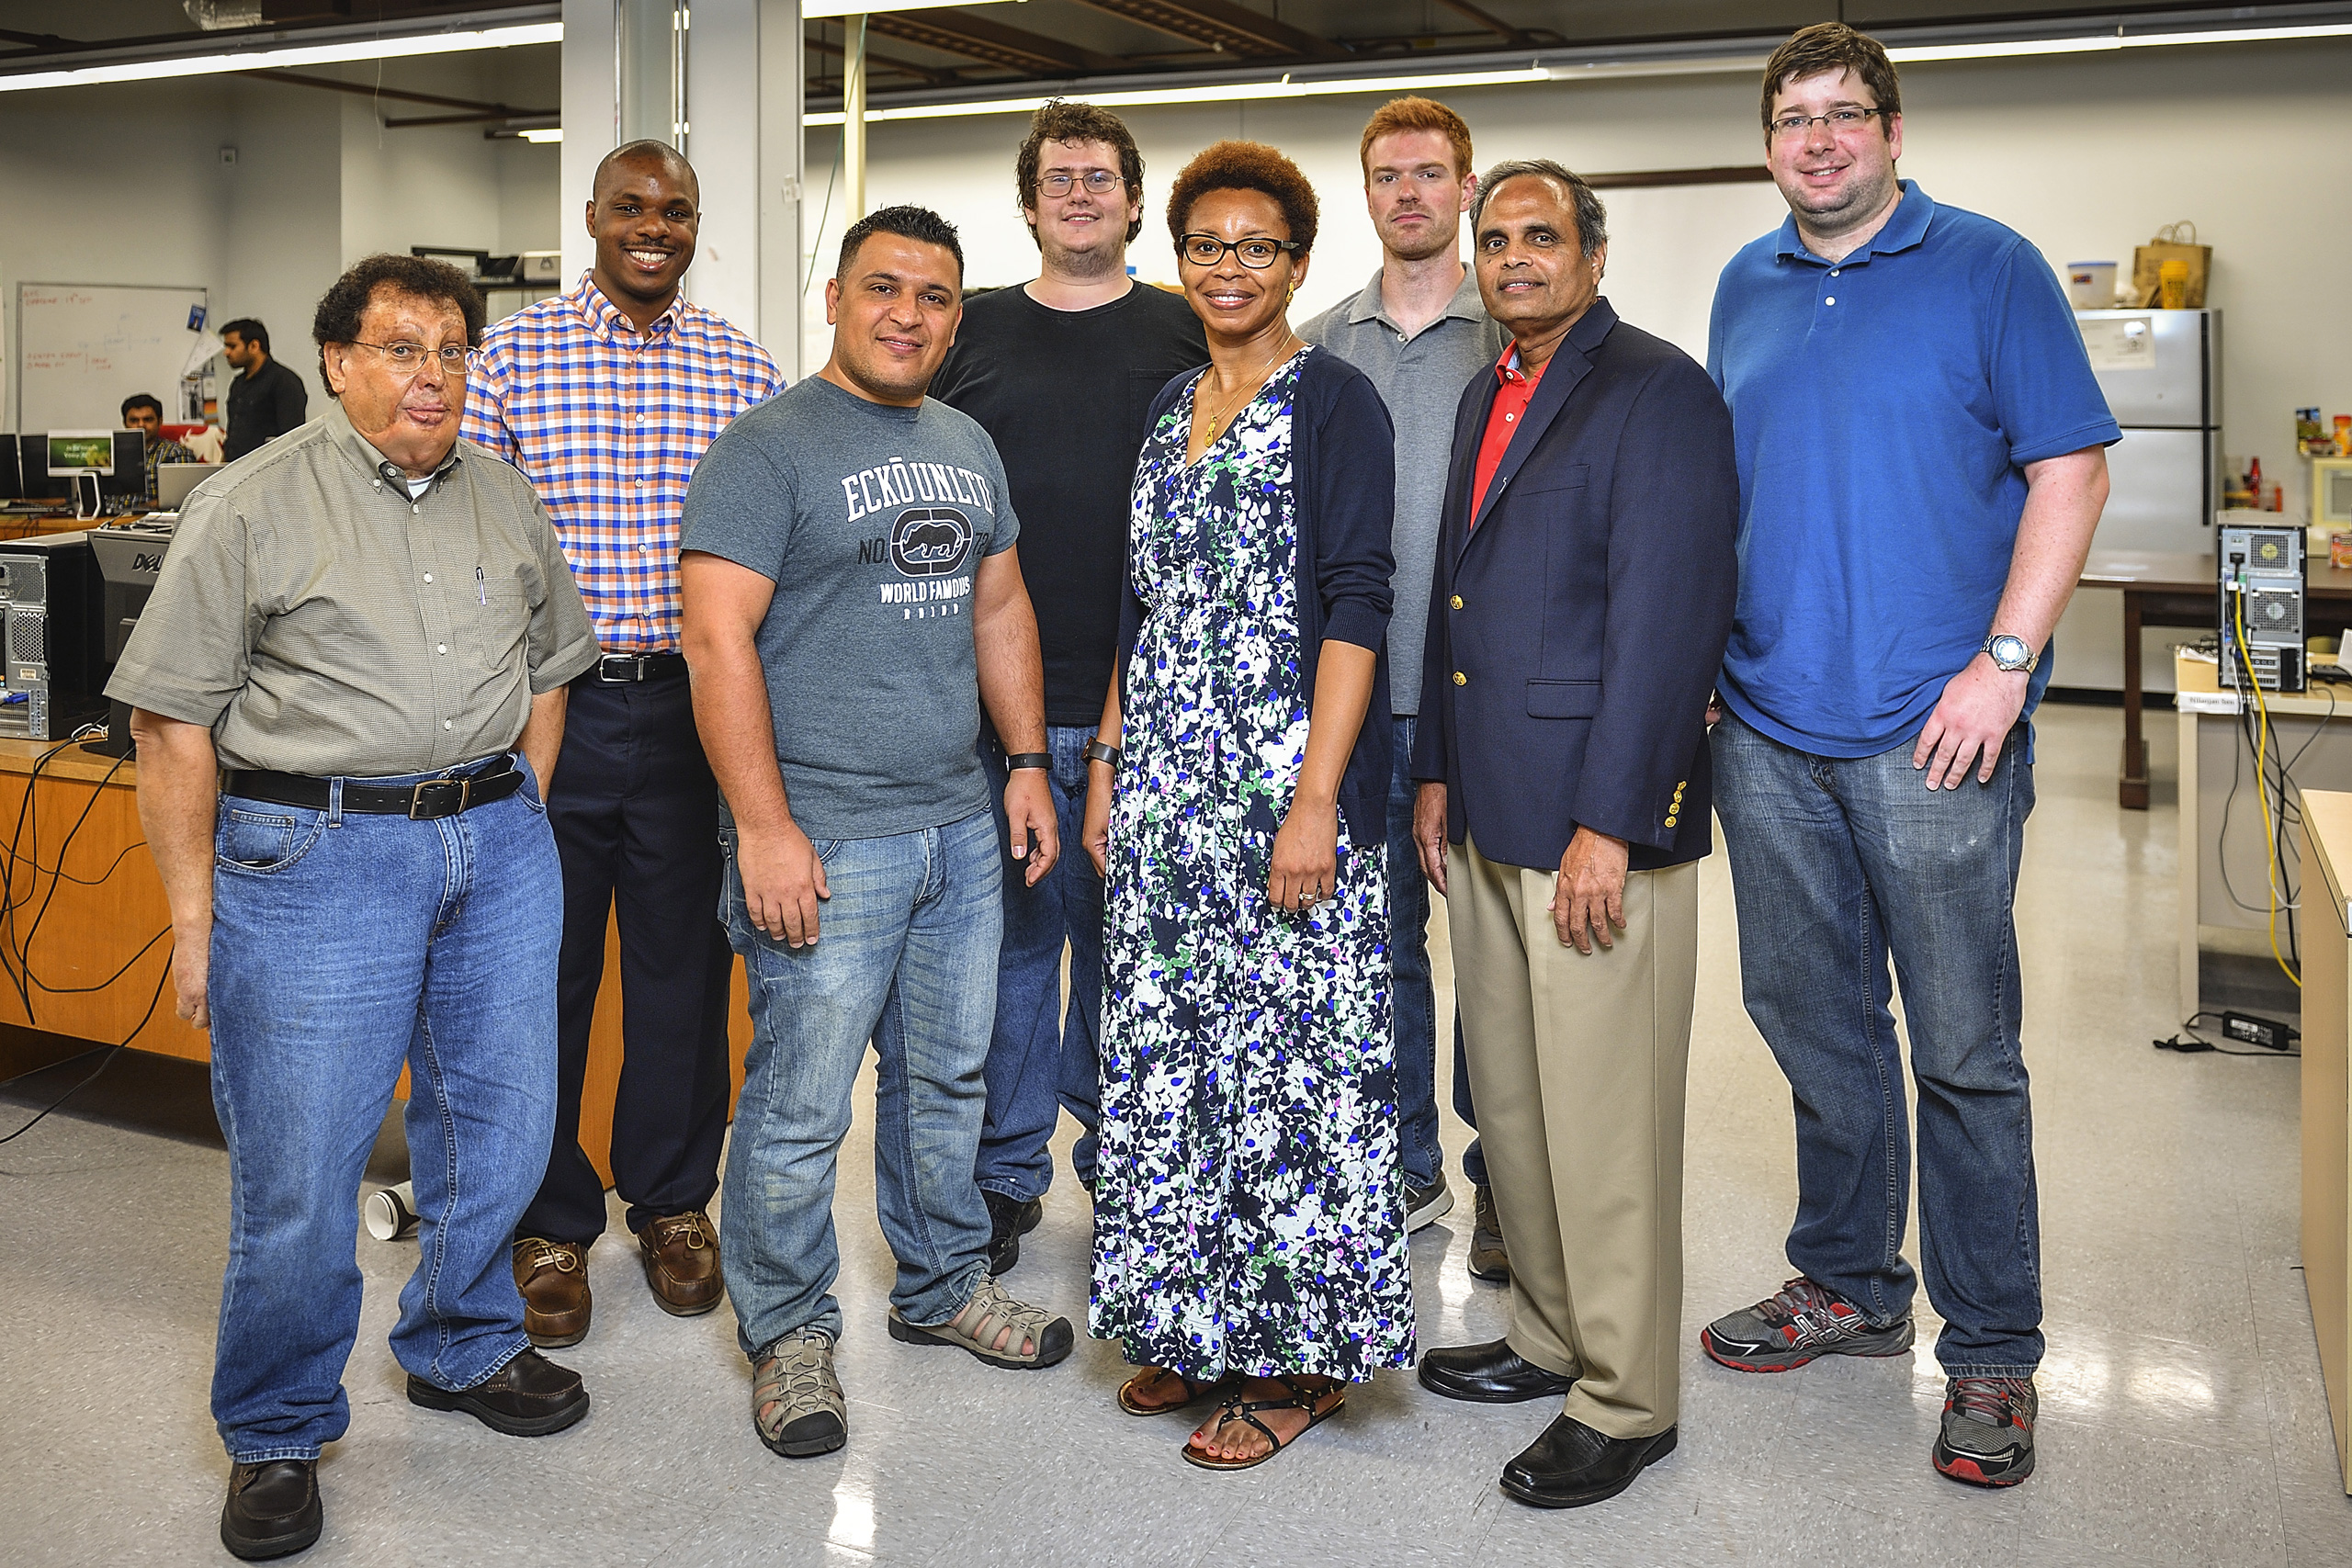 UNT cybersecurity students and professors (from left) Dr. Suliman Hawamdeh, Quentin Mayo, Yassir Hashem, Logan Widick, Obi Ogbanufe, Josh Talkington, Dr. Ram Dantu and Michael Jaynes. Not shown: Dr. Dan Kim and Dr. Victor R. Prybutok.